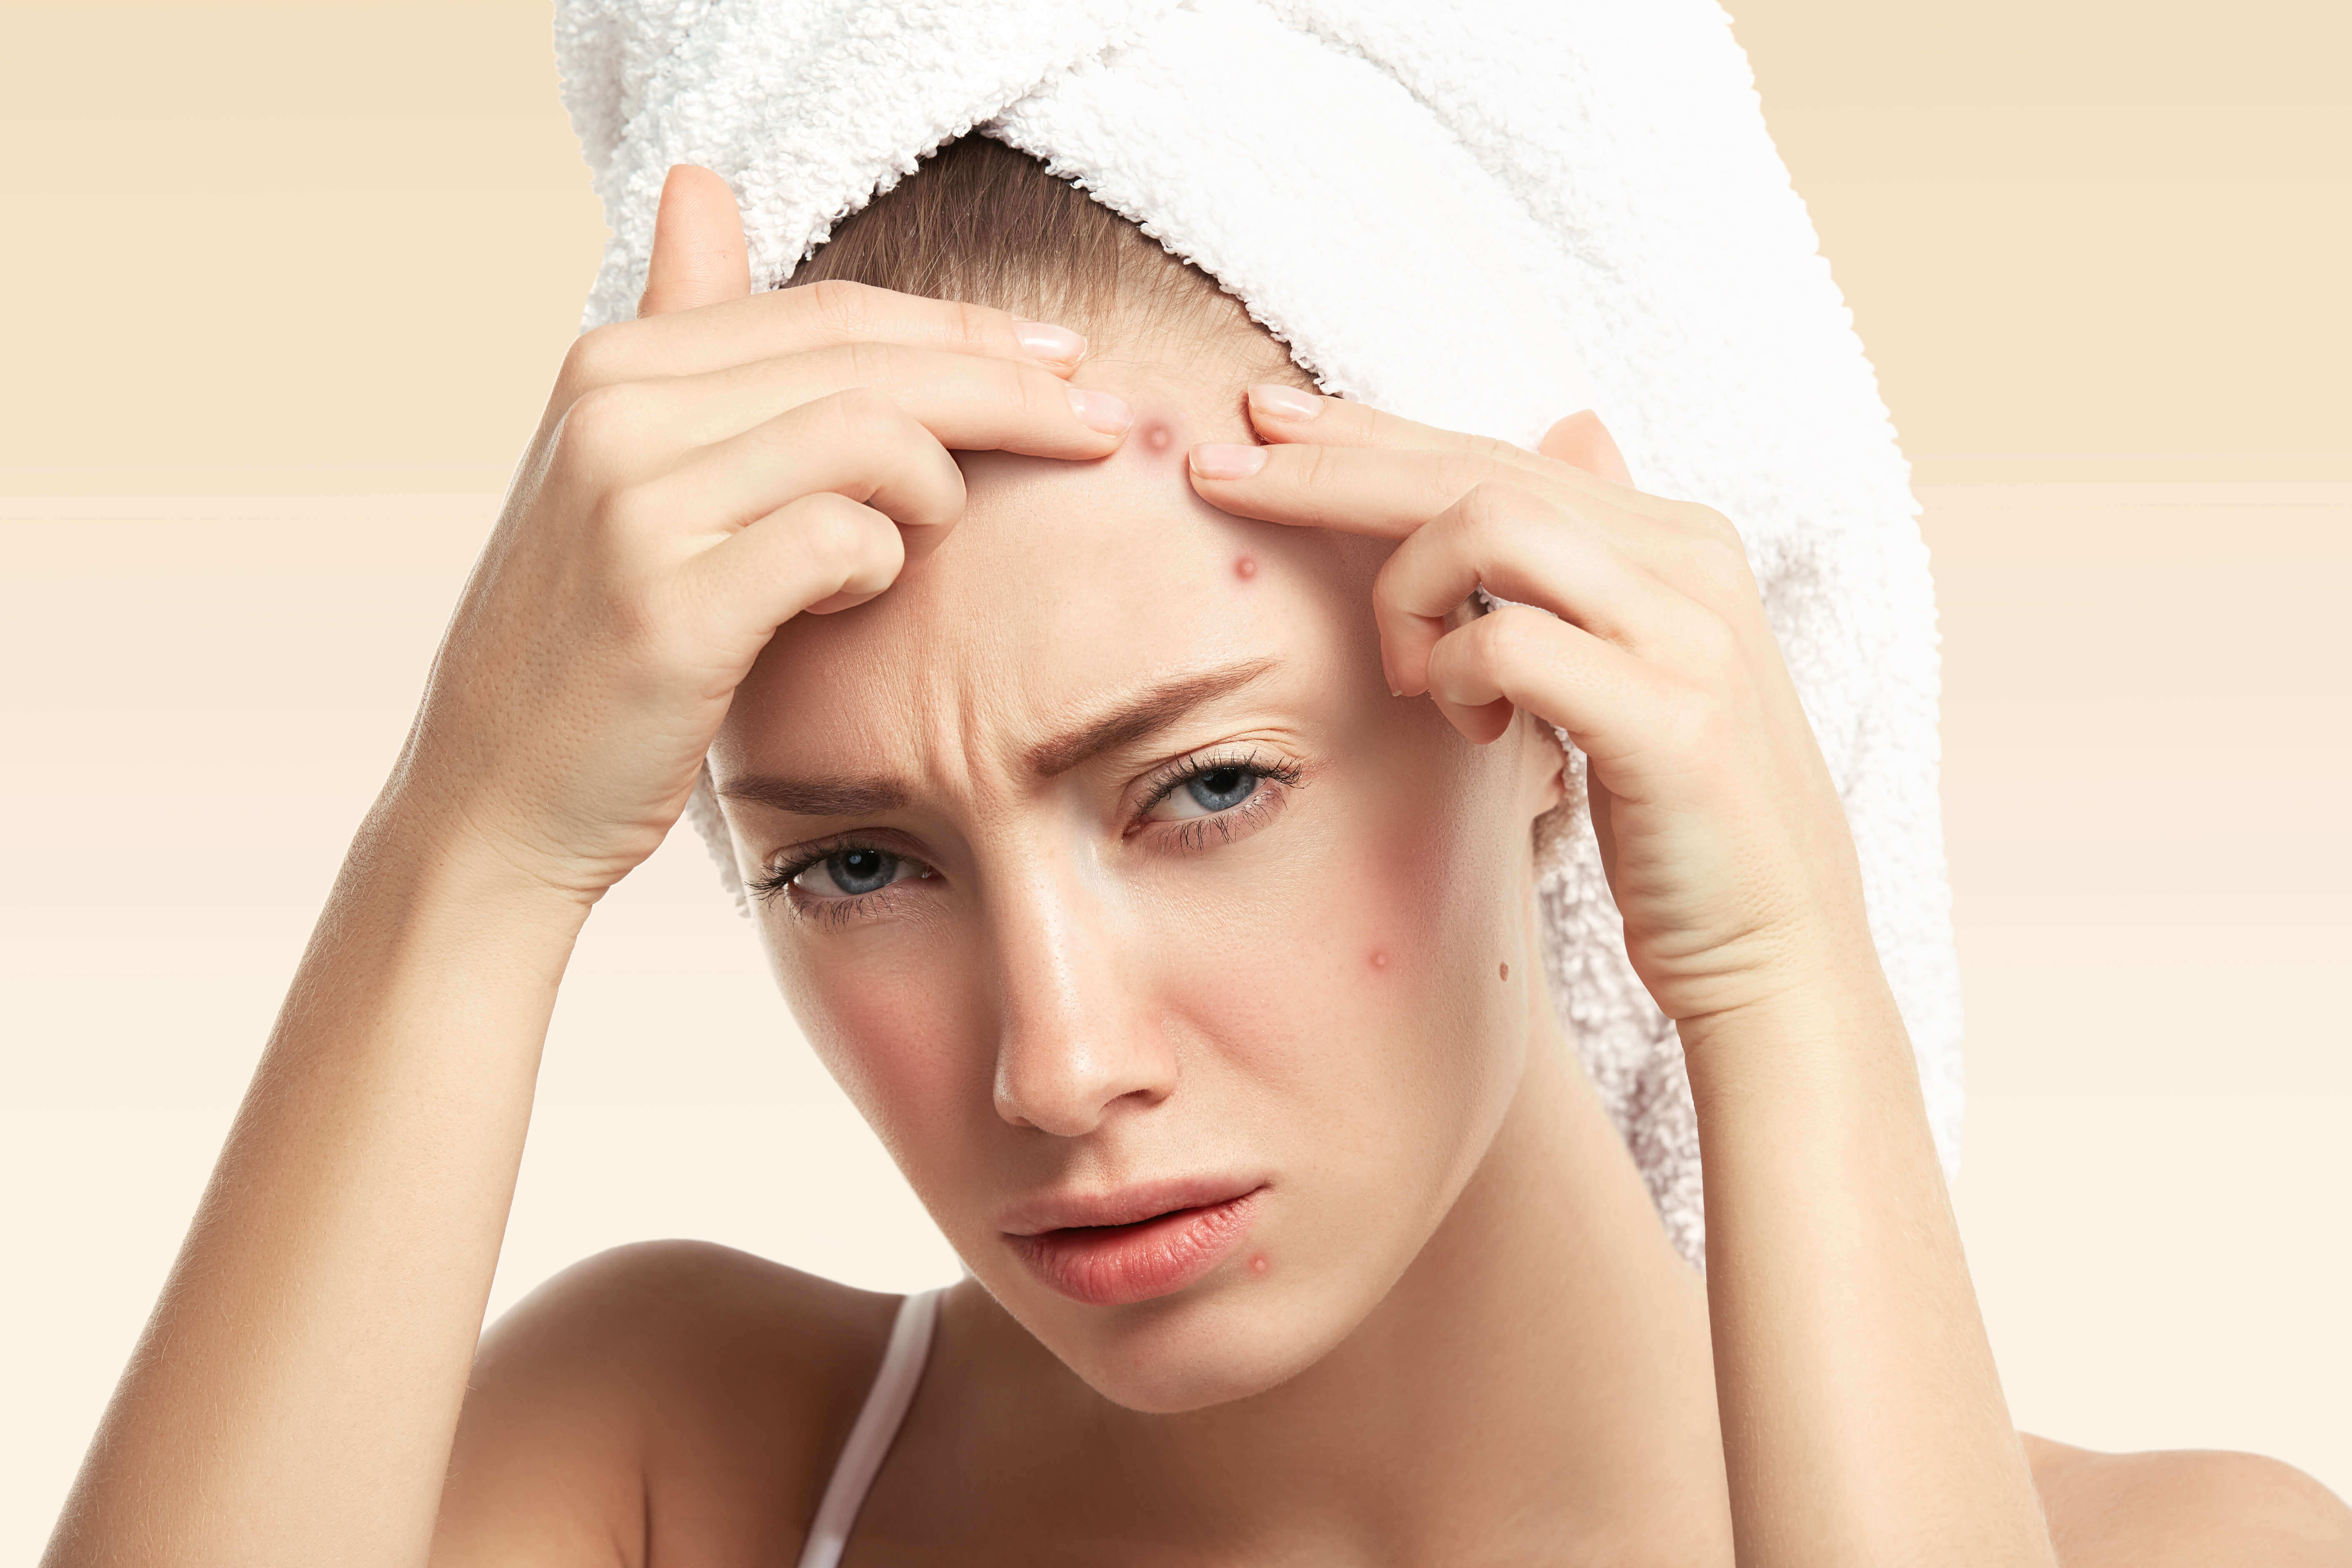 A blonde woman with an acne outbreak on her face